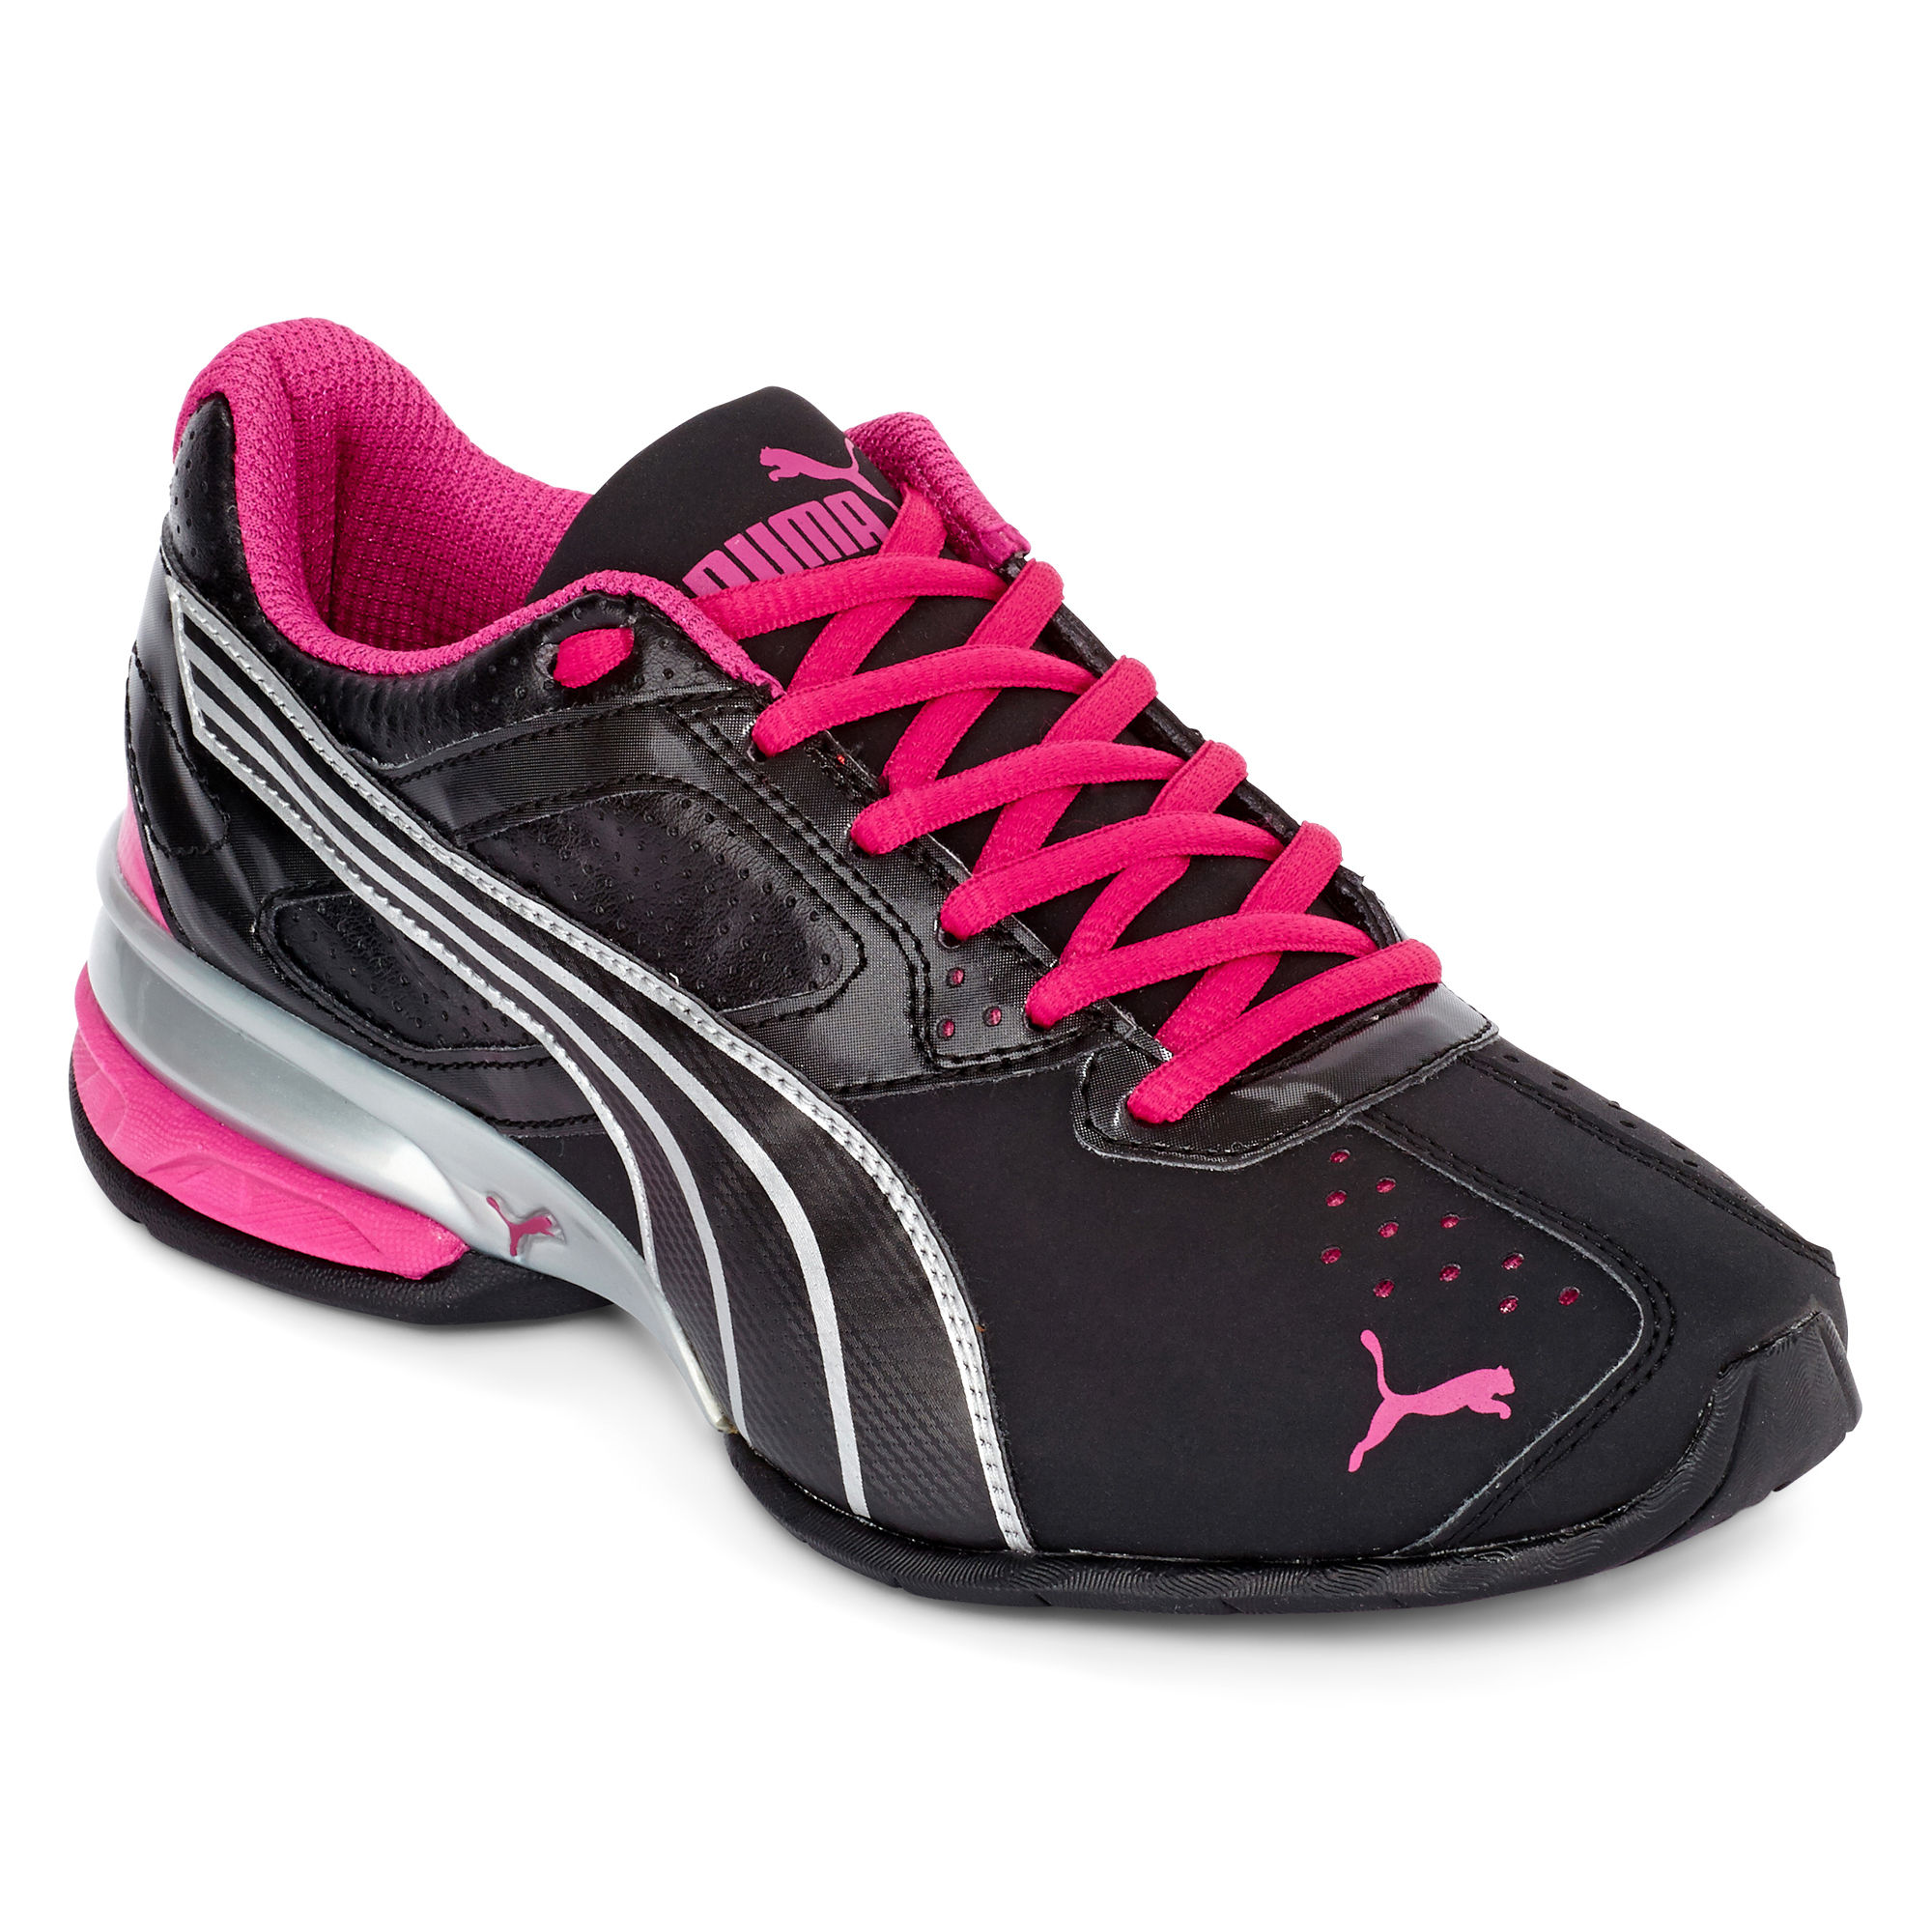 Puma Womens Tazon 5 Athletic Shoes, Black/Silver/Pink on ...